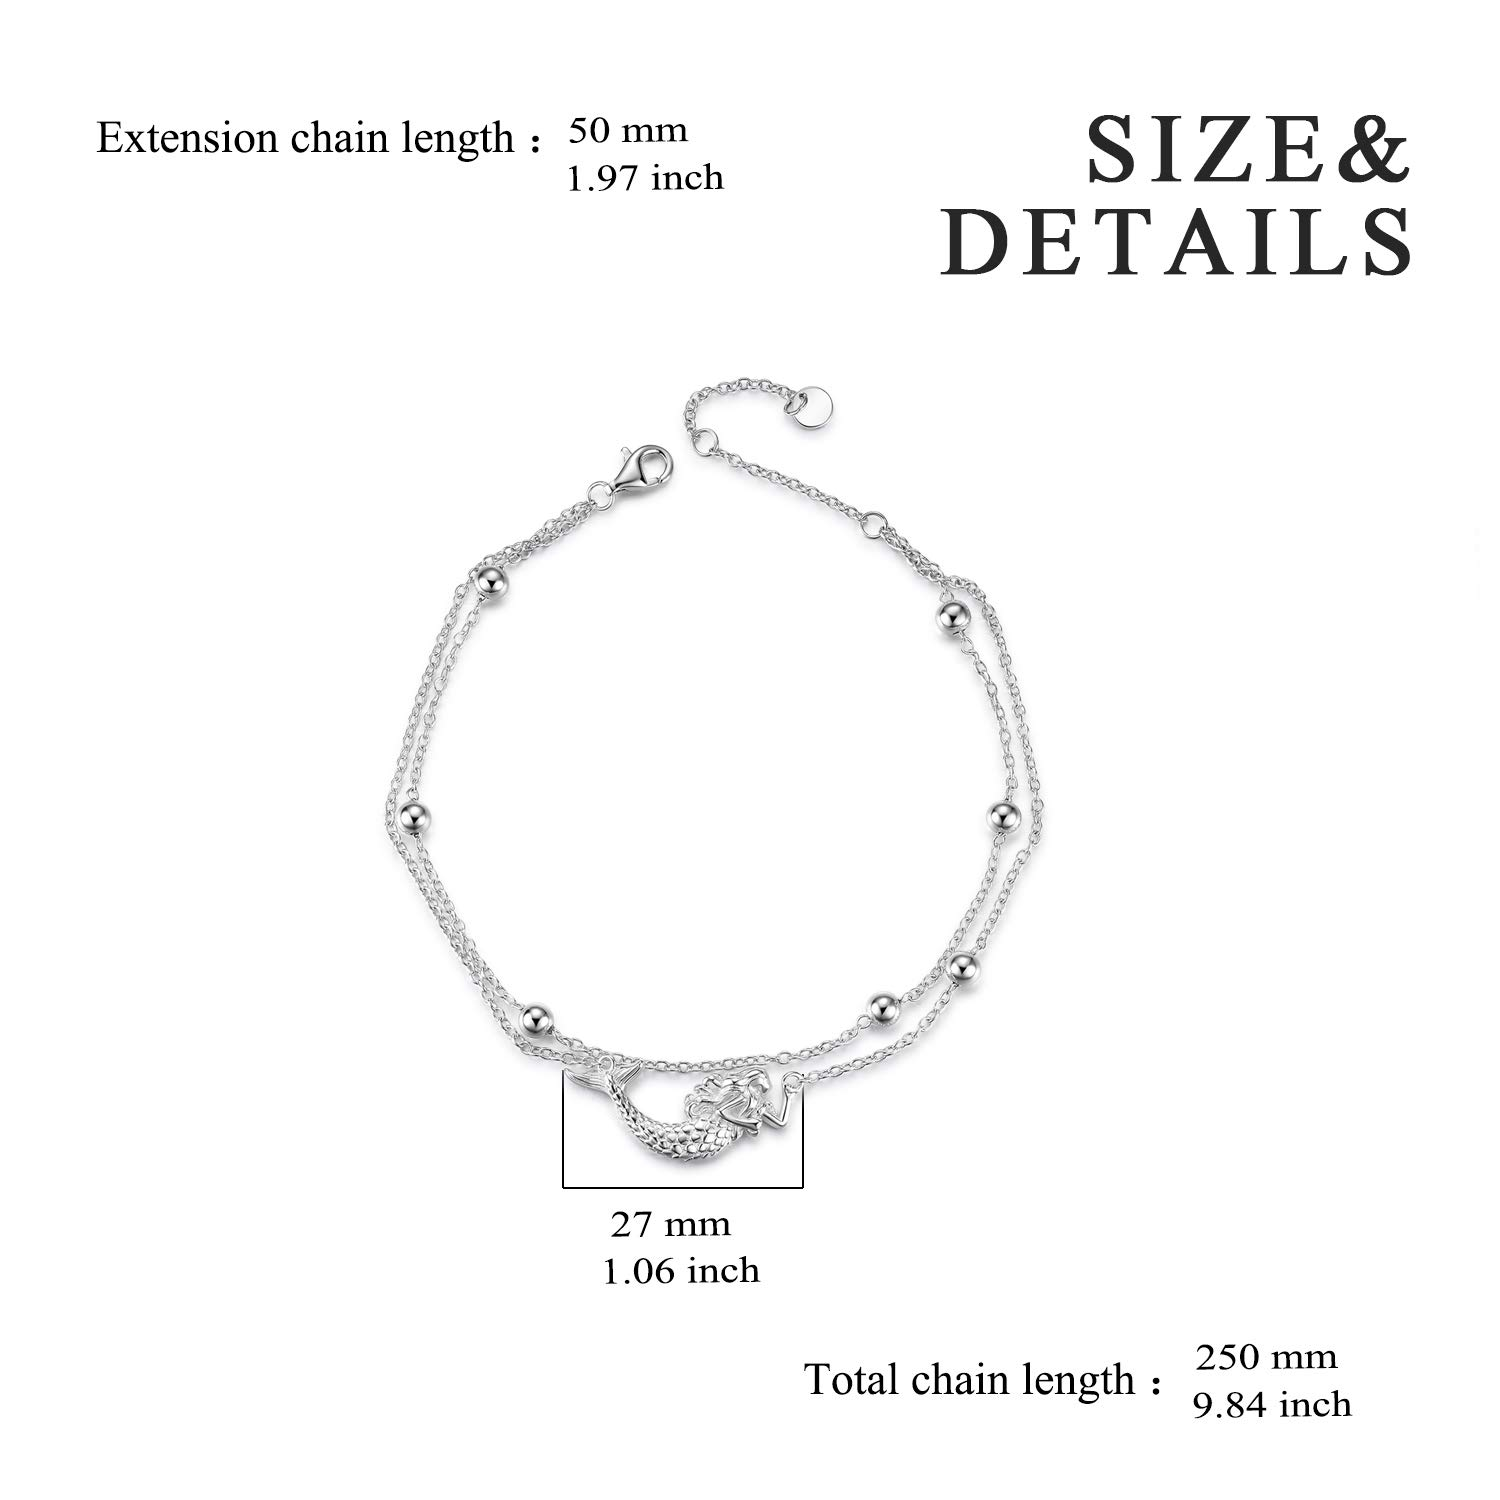 Ball Bead Bracelet,Ball Bead Anklet Sterling Silver Italy Thin Box Layer Chain Anklets for Women Teen Girls Beach Bracelets Anklets Jewelry